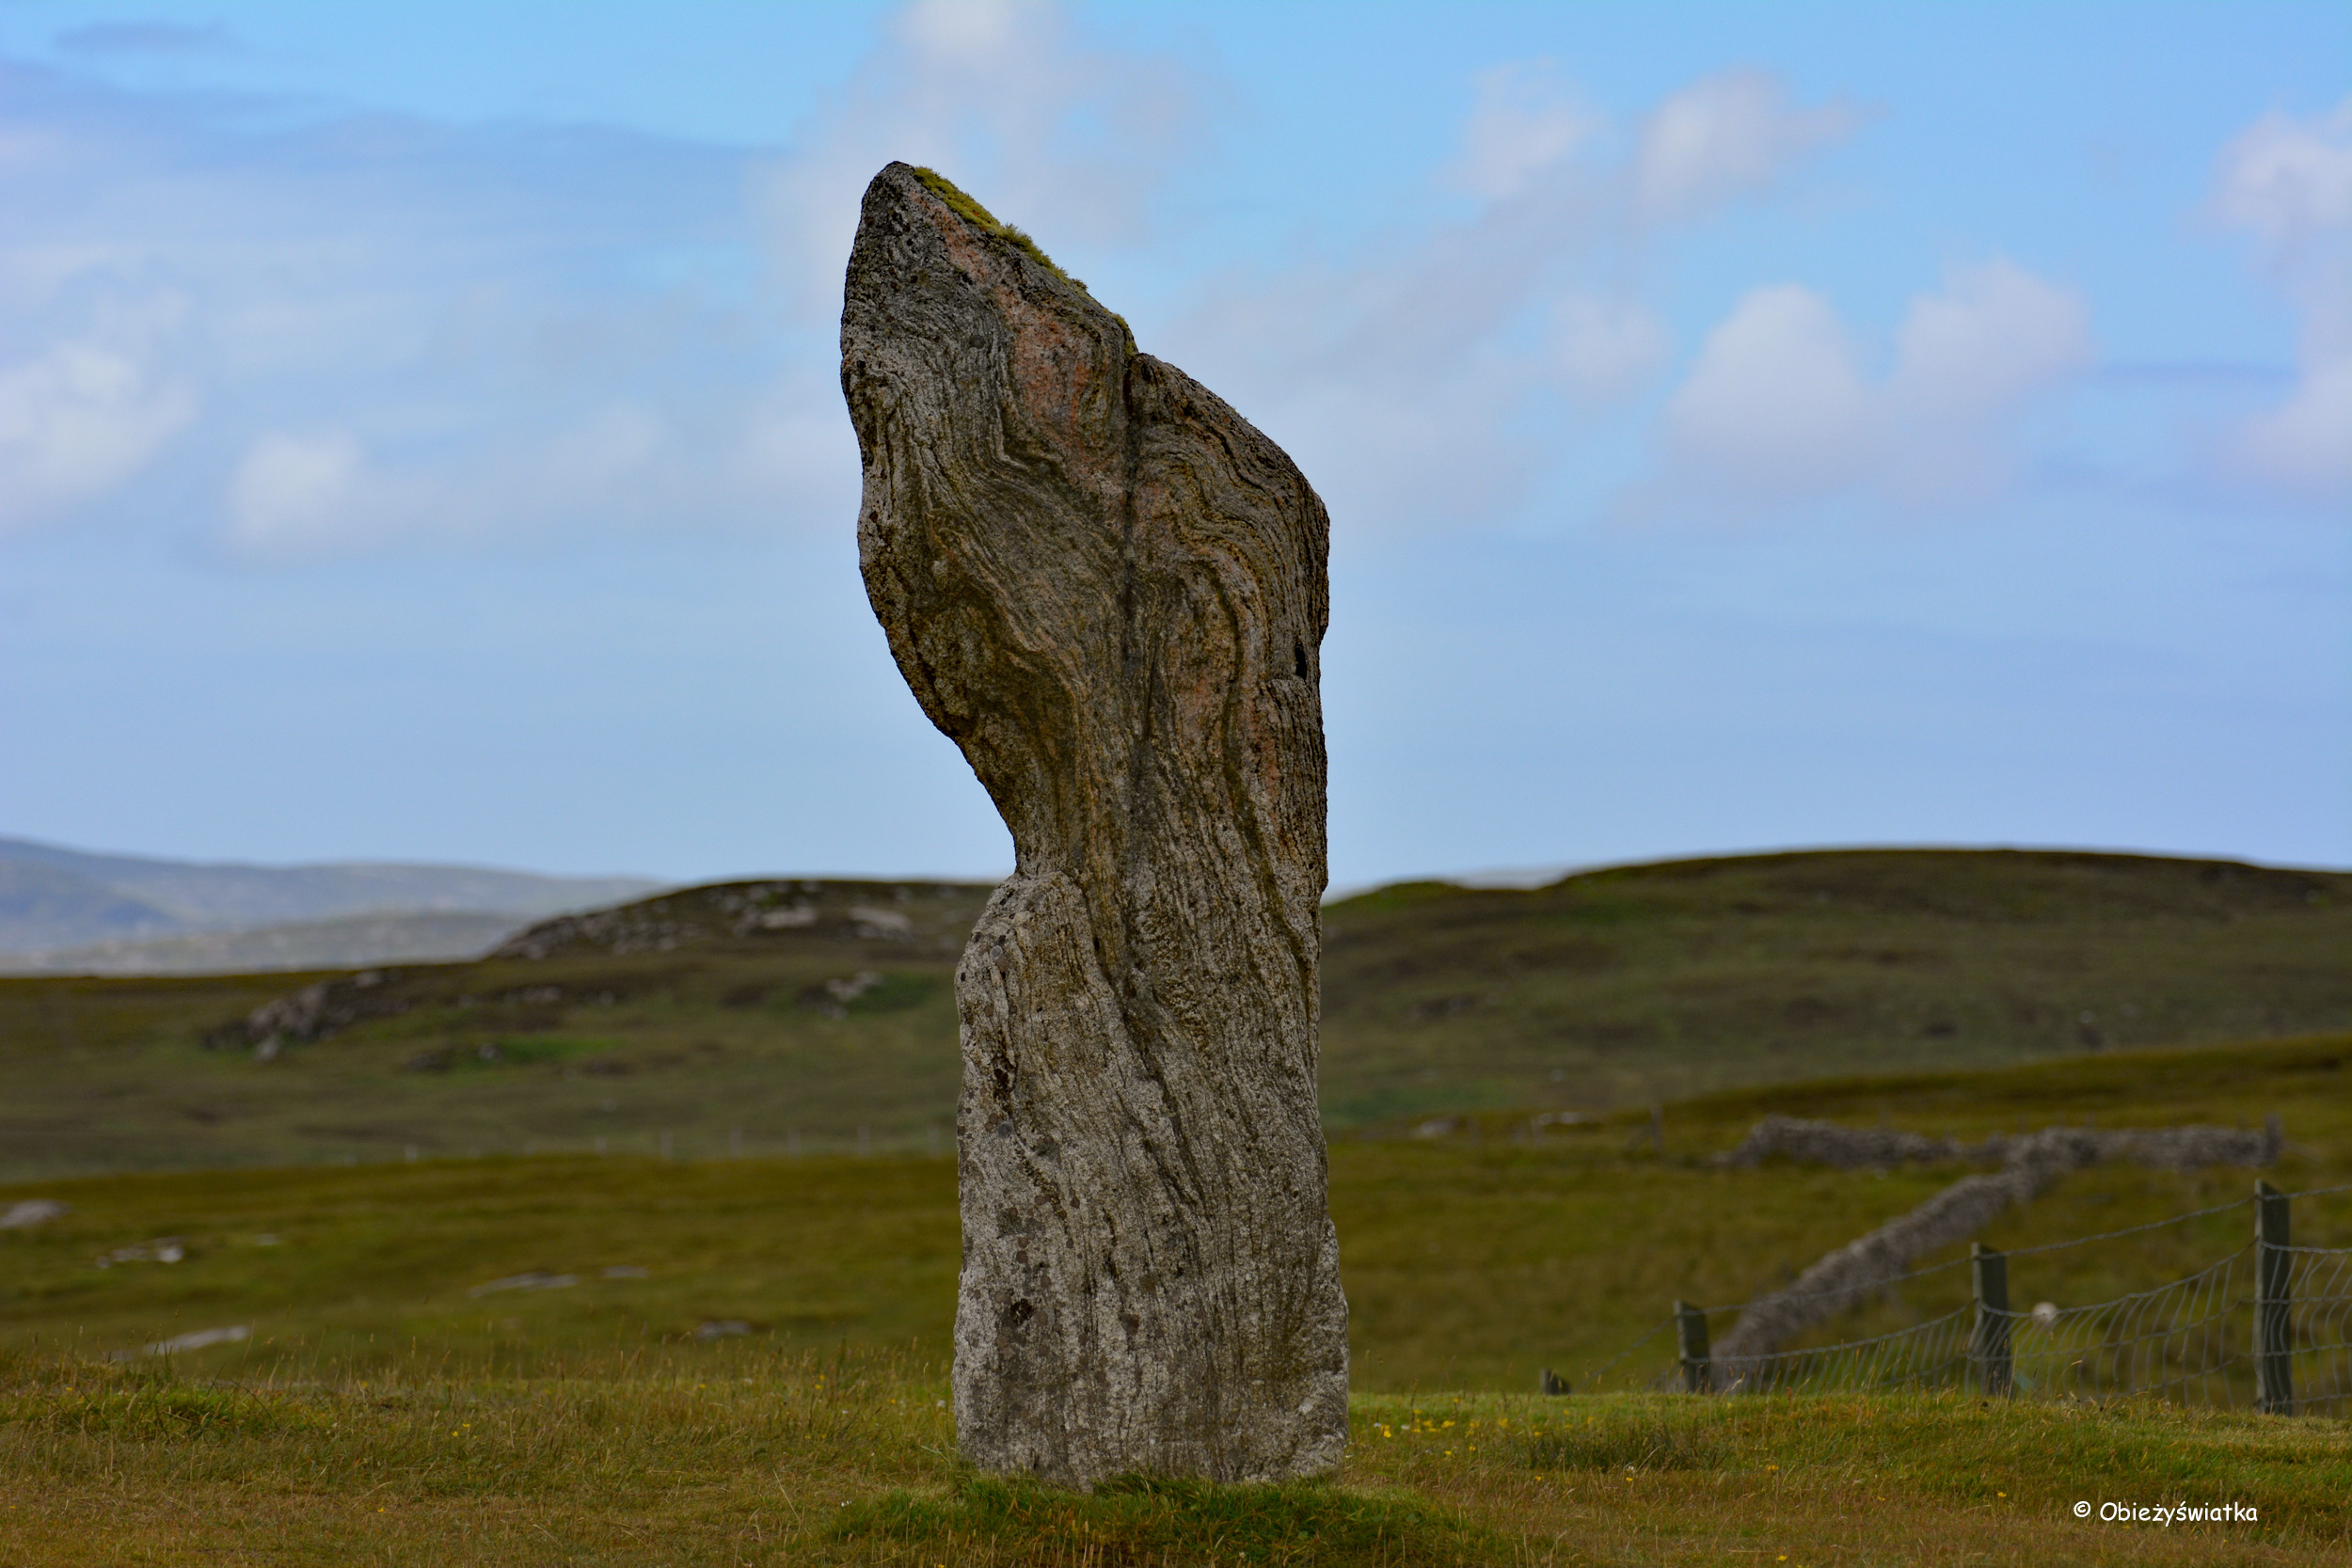 Menhir - Callanish/Calanais, Szkocja, Lewis and Harris